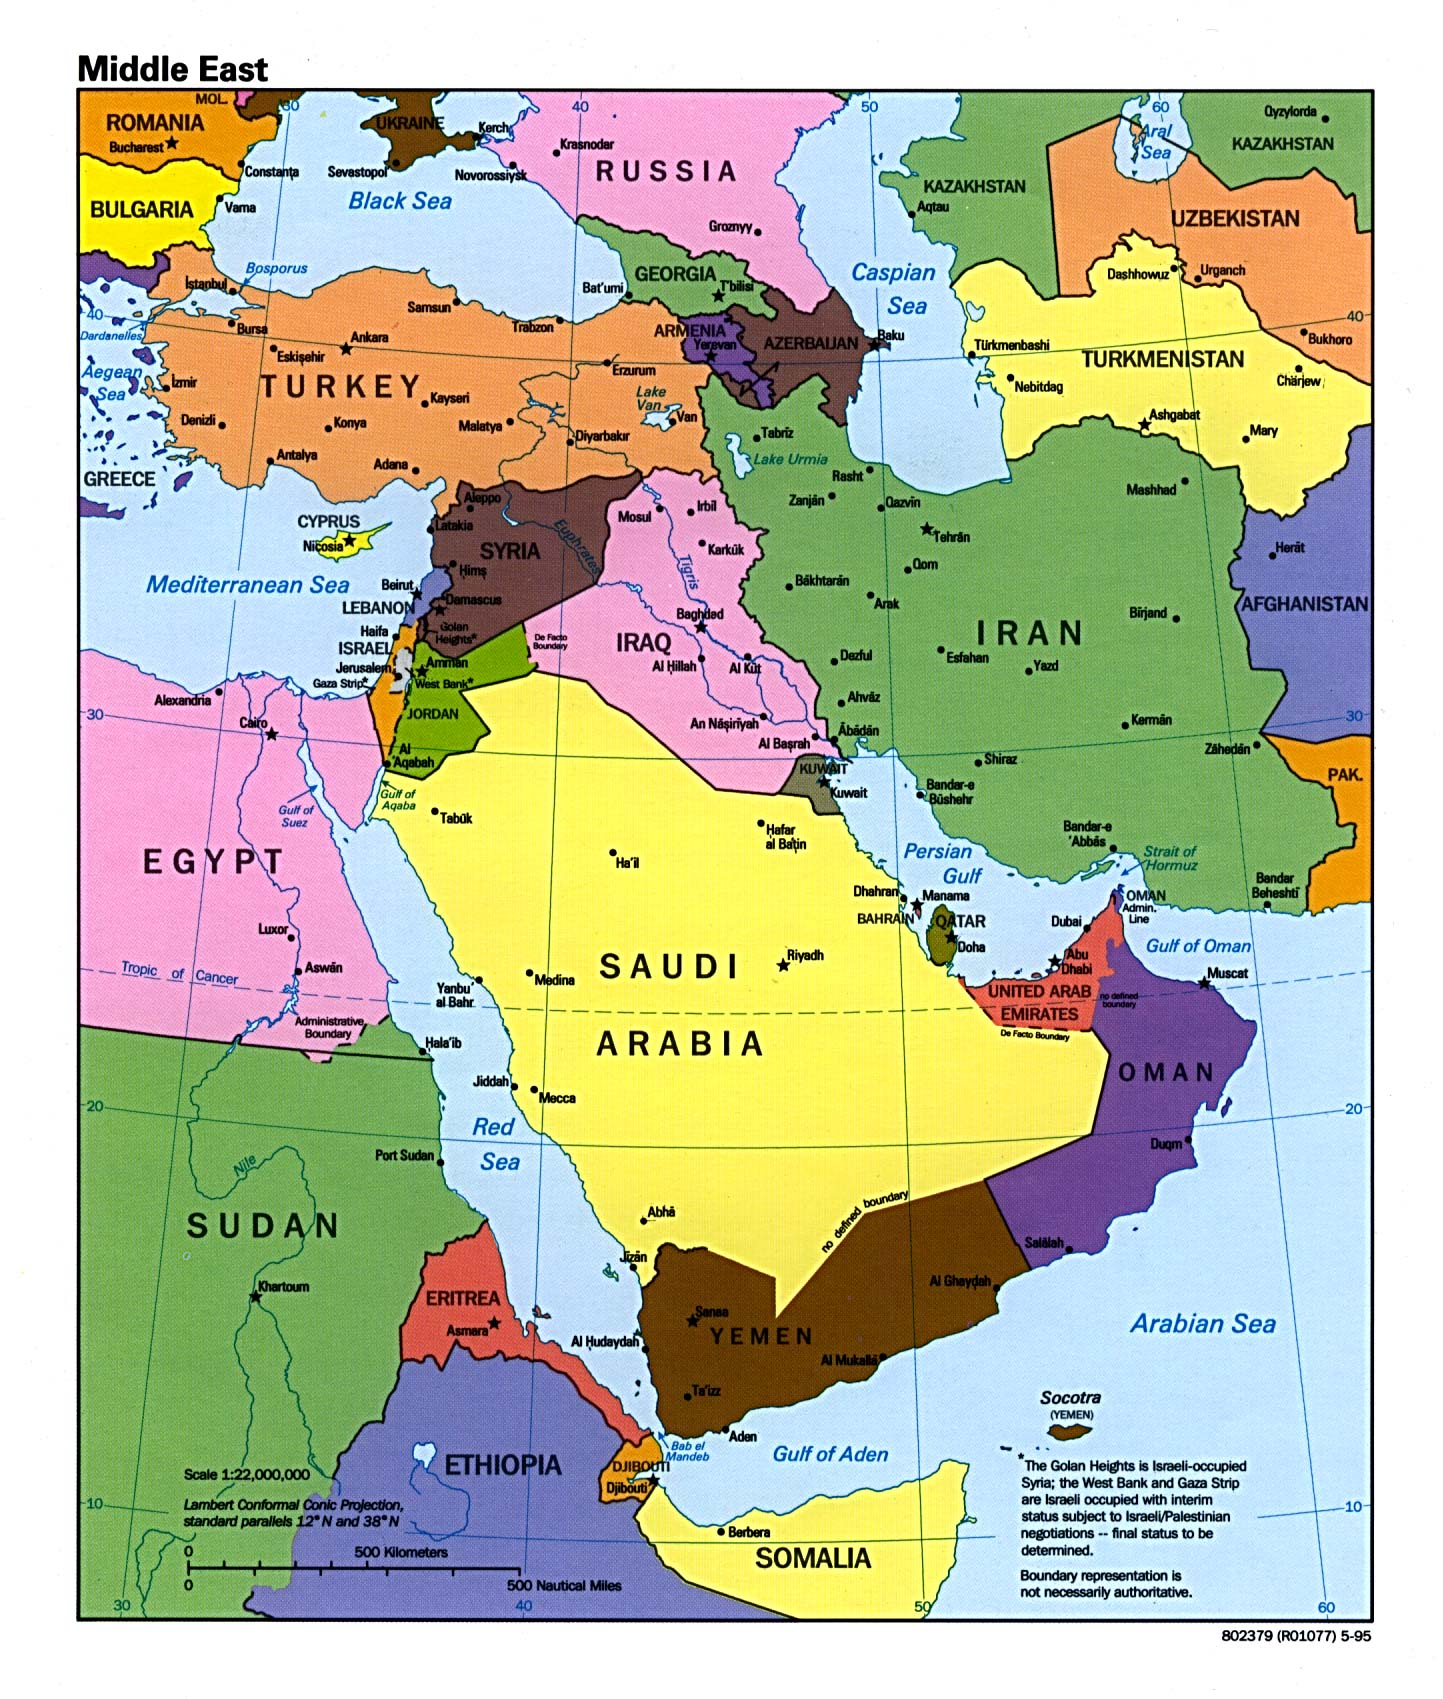 Map Of Middle Eastern Countries Middle East Maps   Perry Castañeda Map Collection   UT Library Online